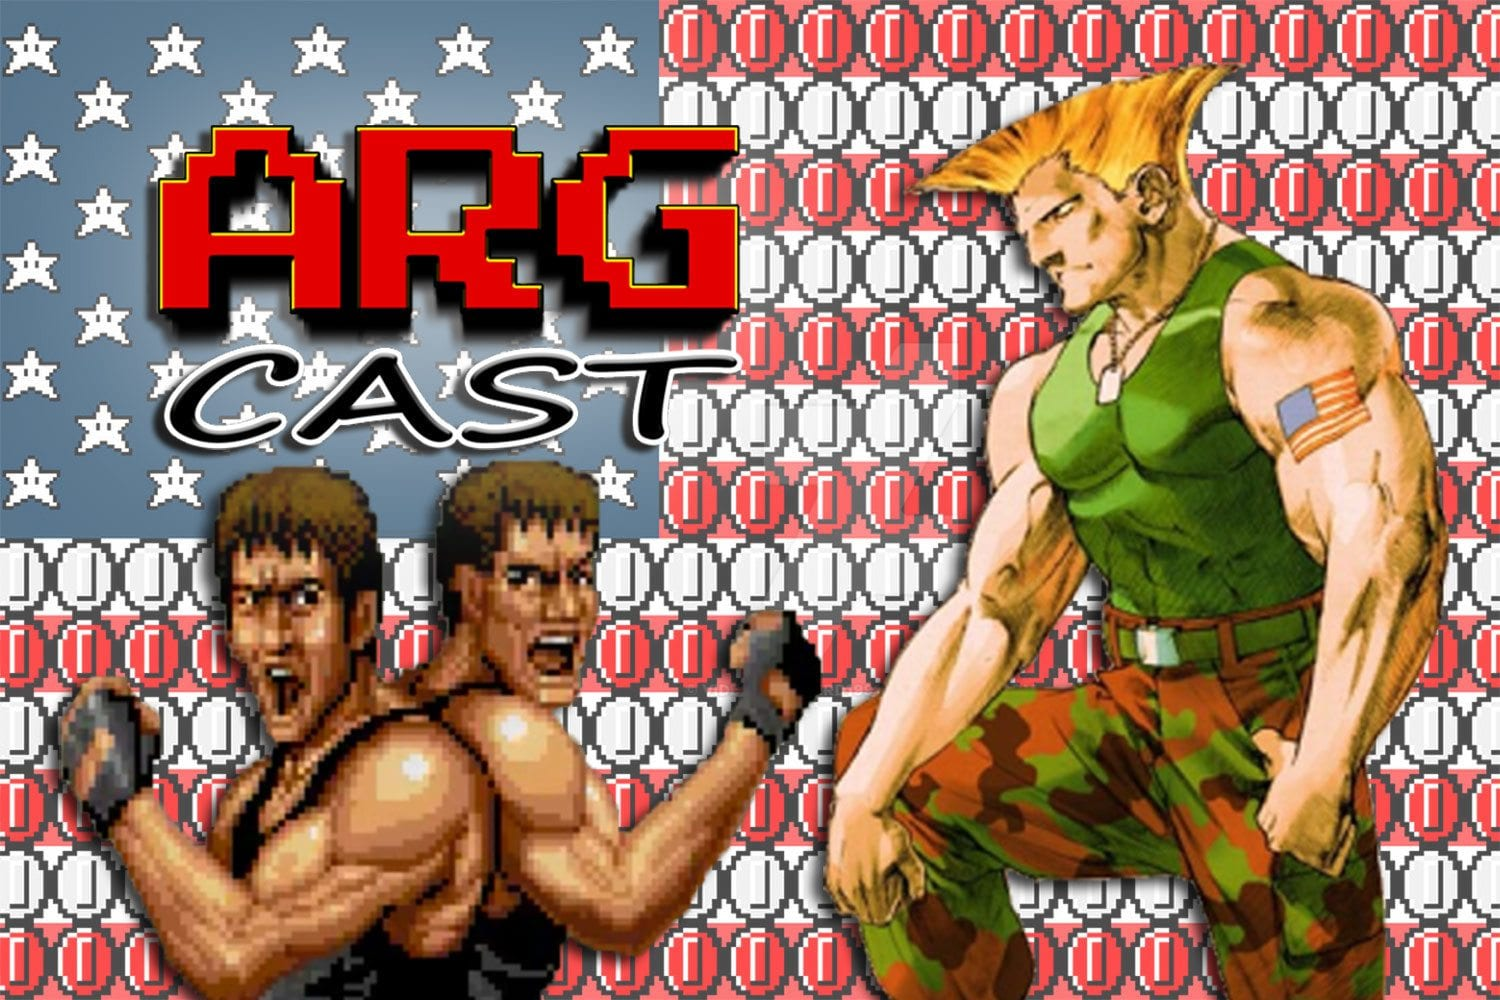 ARGcast #67: Independence Day Special! Real Games for Real Americans